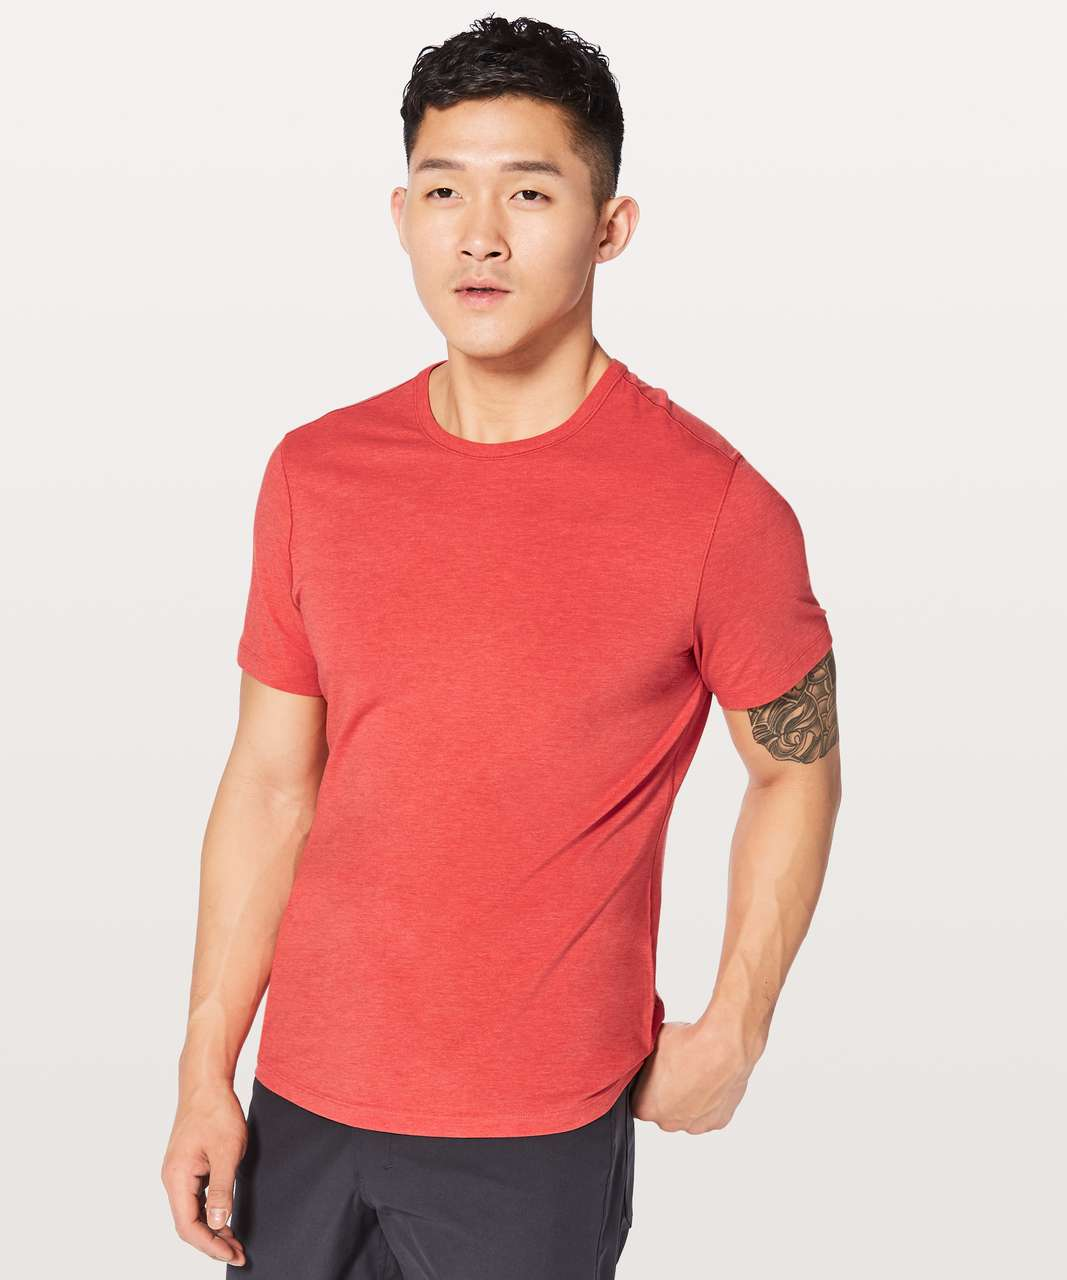 Lululemon 5 Year Basic Tee *Updated Fit - Heathered Amaranth